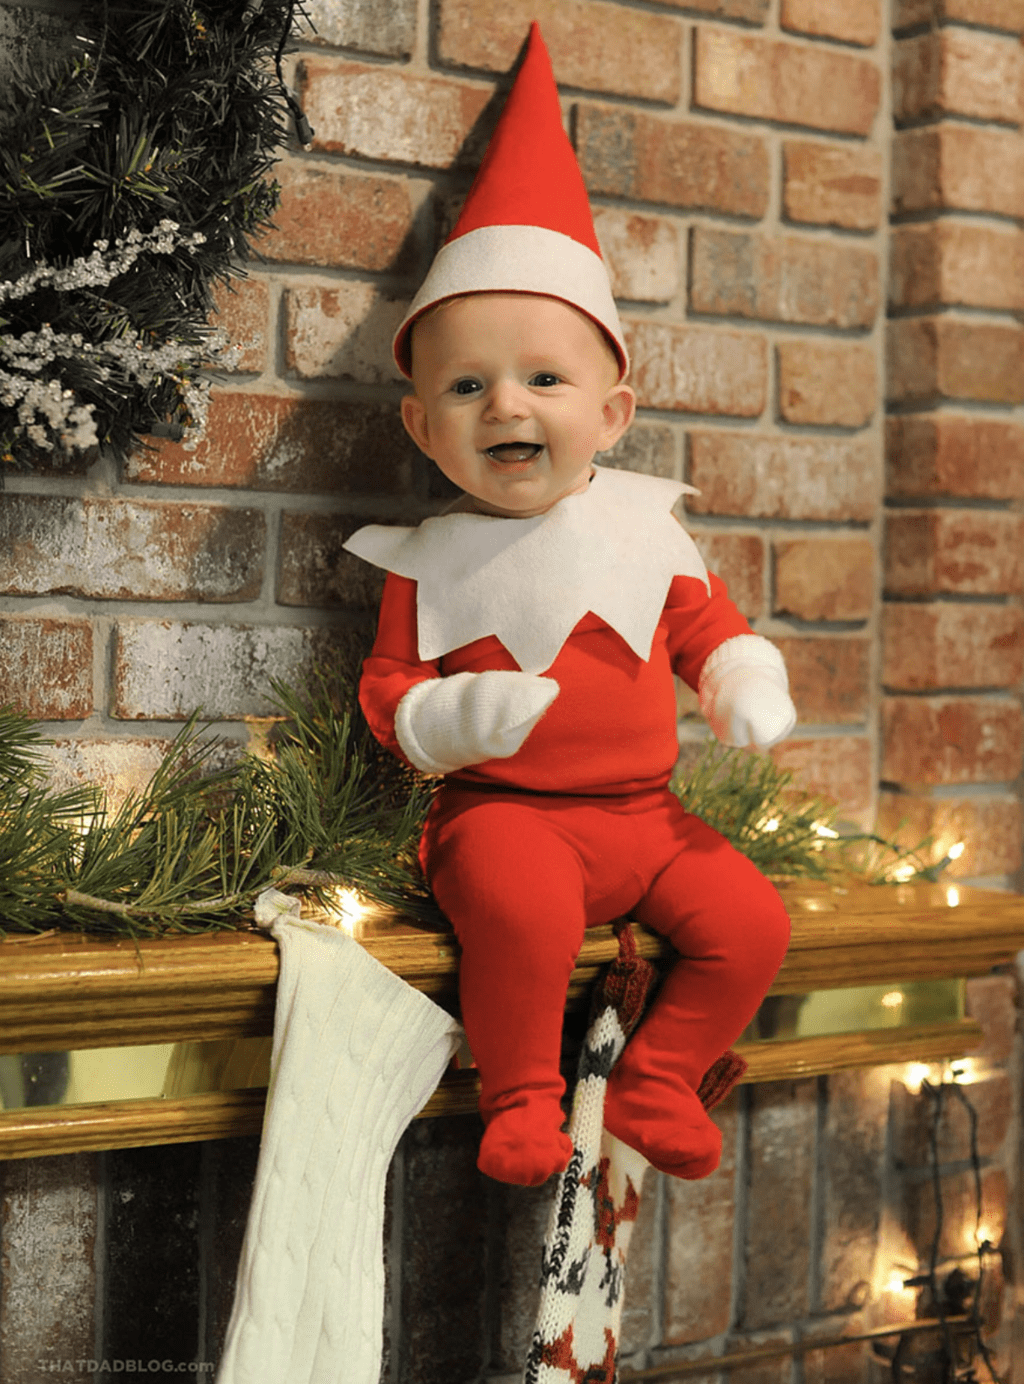 Dad Transforms His Baby Into Real Life Elf On A Shelf